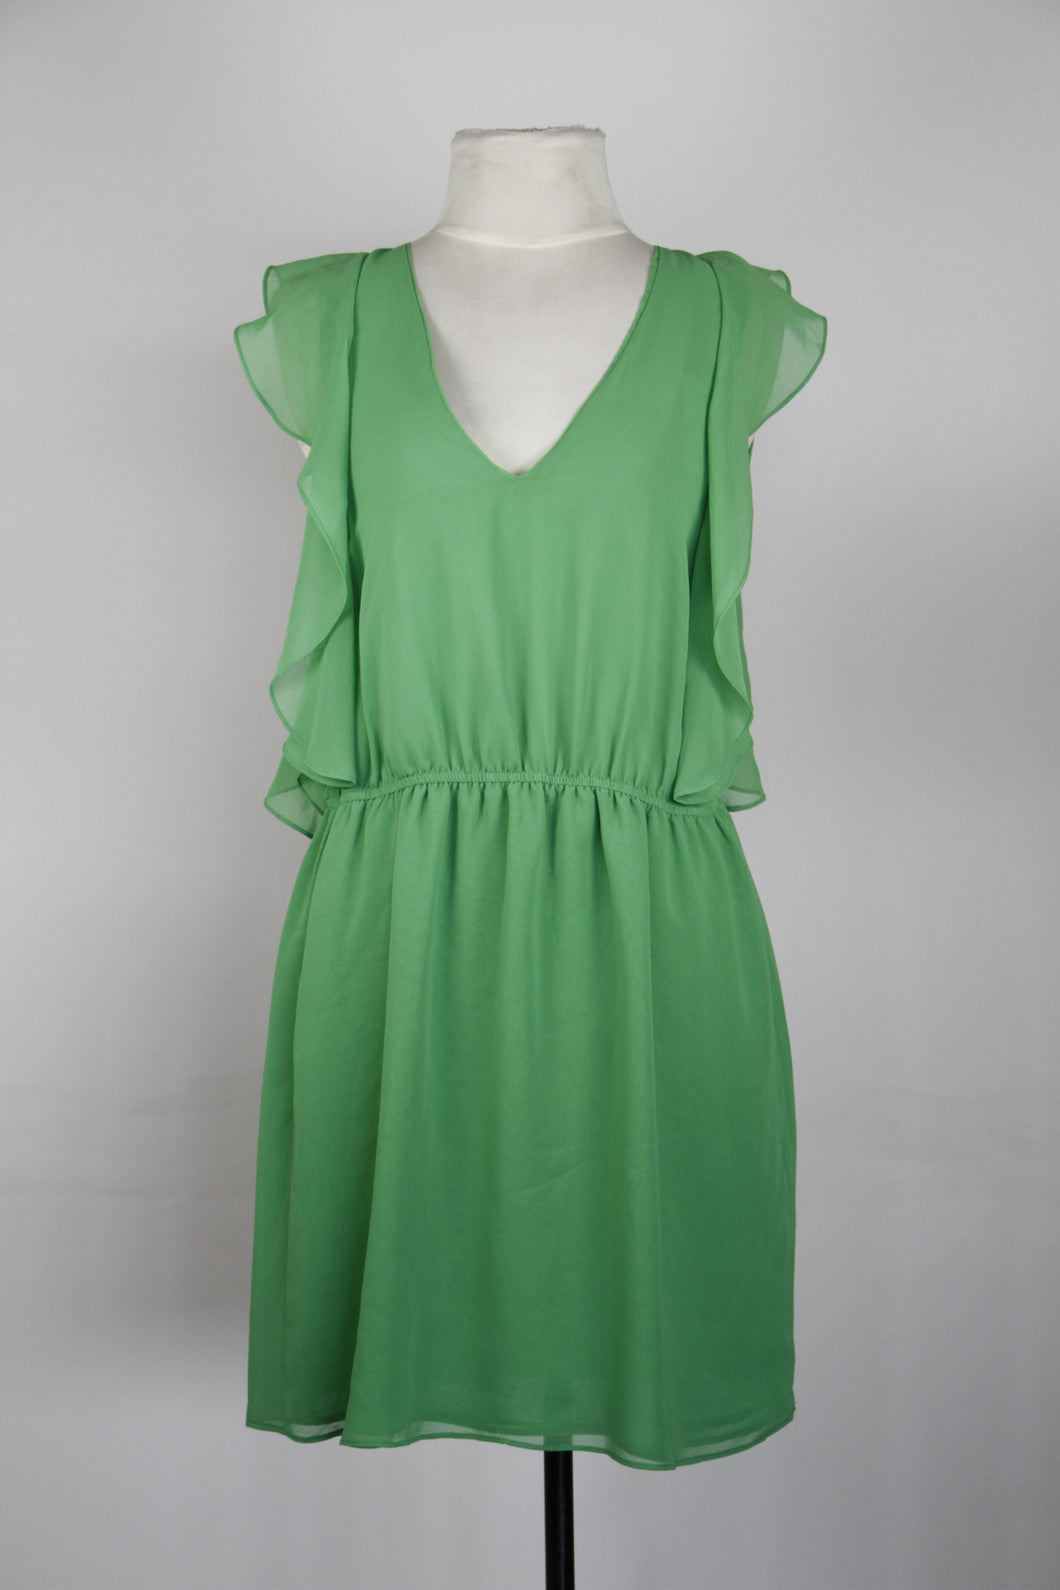 Zara Green V-Neck Dress with Ruffle Sleeves